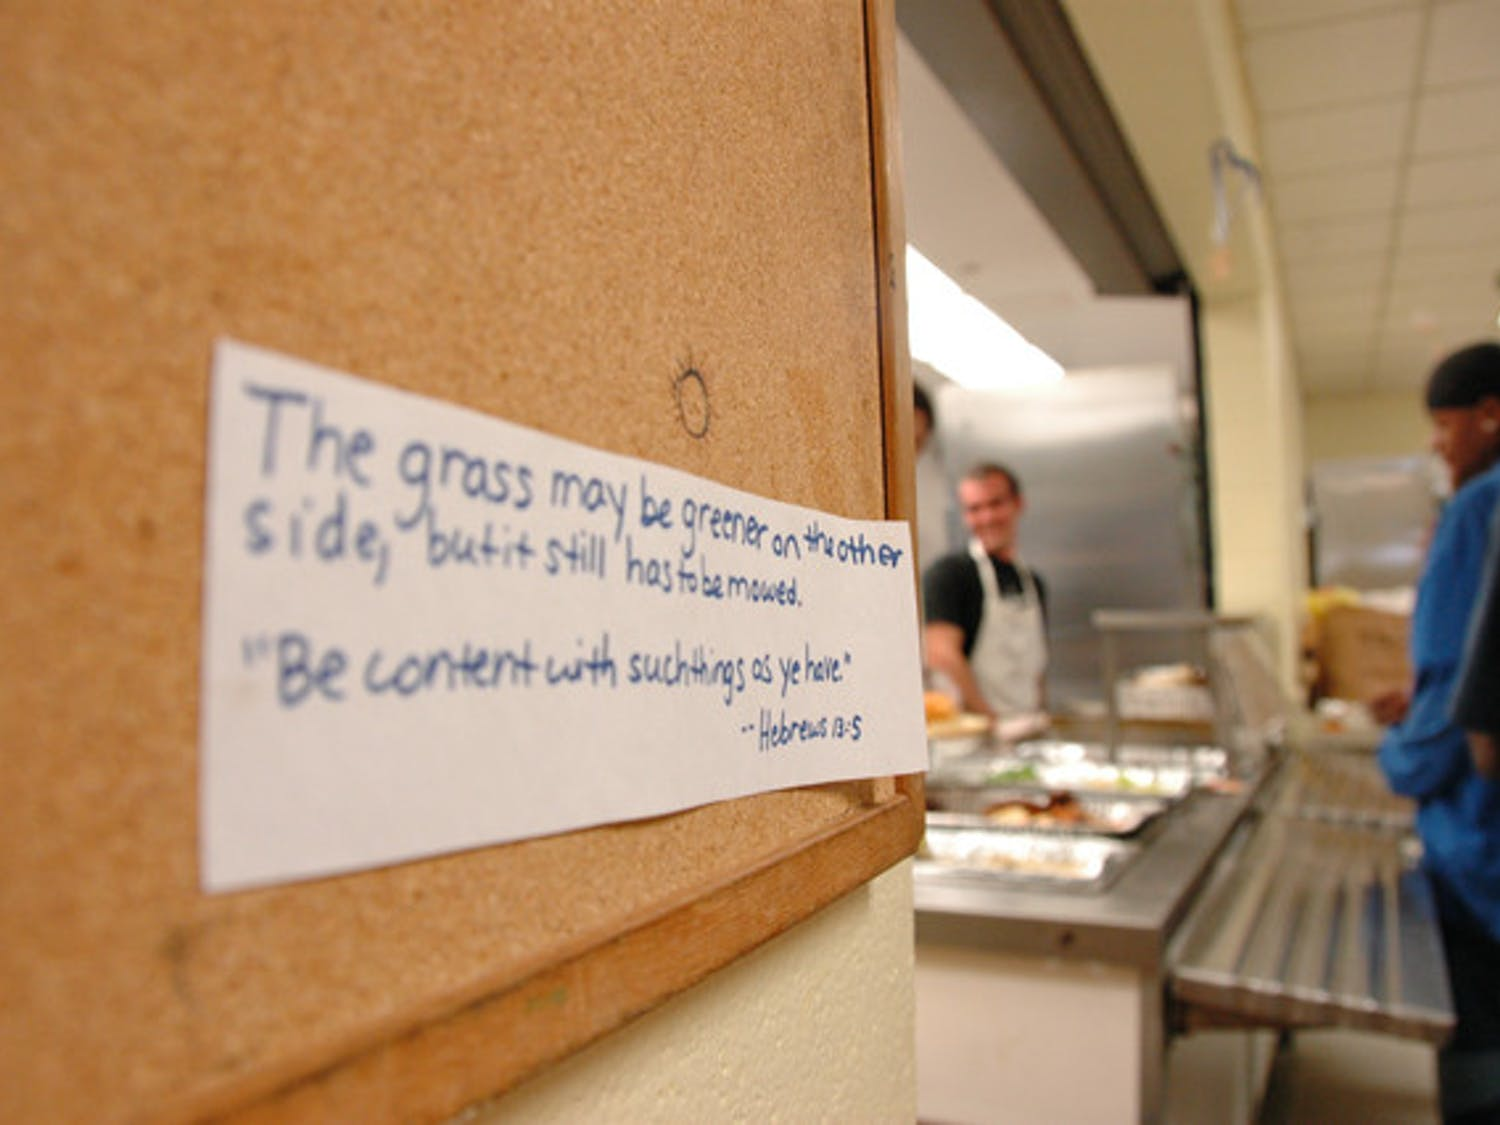 The St. Francis House soup kitchen was able to serve meals during a three-hour time frame as of Wednesday, rather than the previous limit of 130 meals a day.